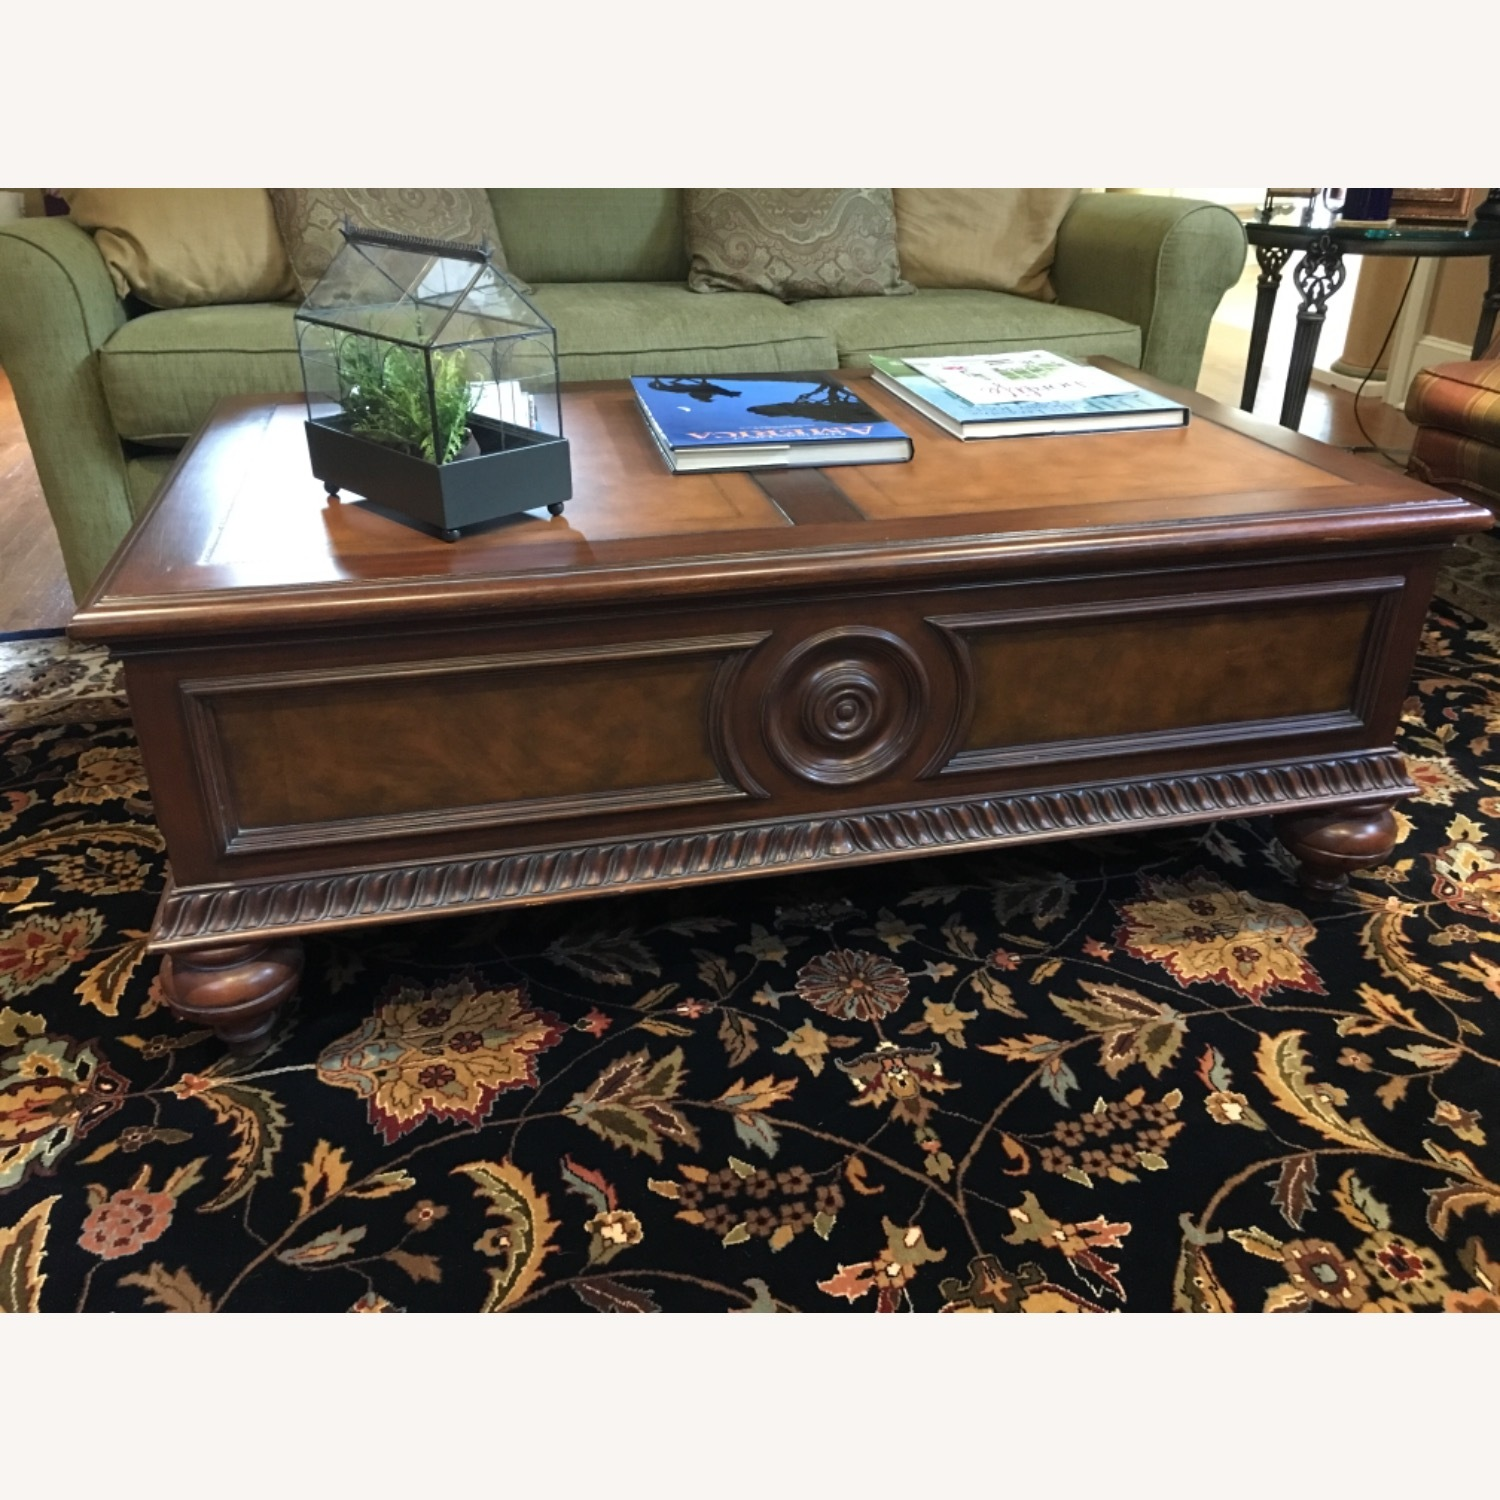 Ethan Allen Morley Coffee Table - image-1